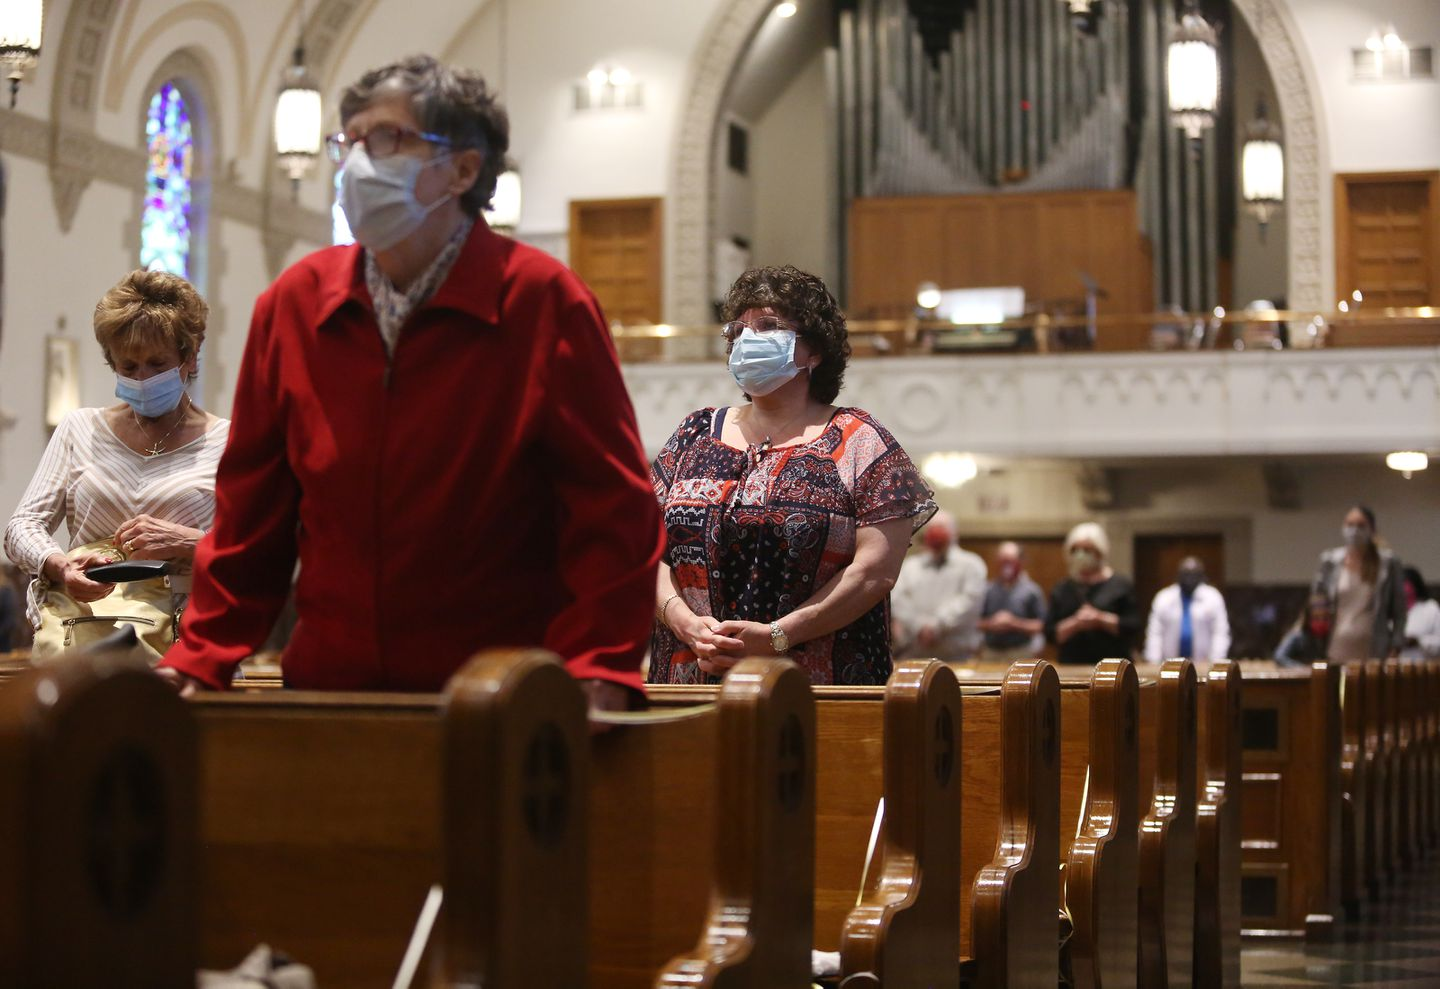 Churches plot cautious course after Baker allows reopening - The ...